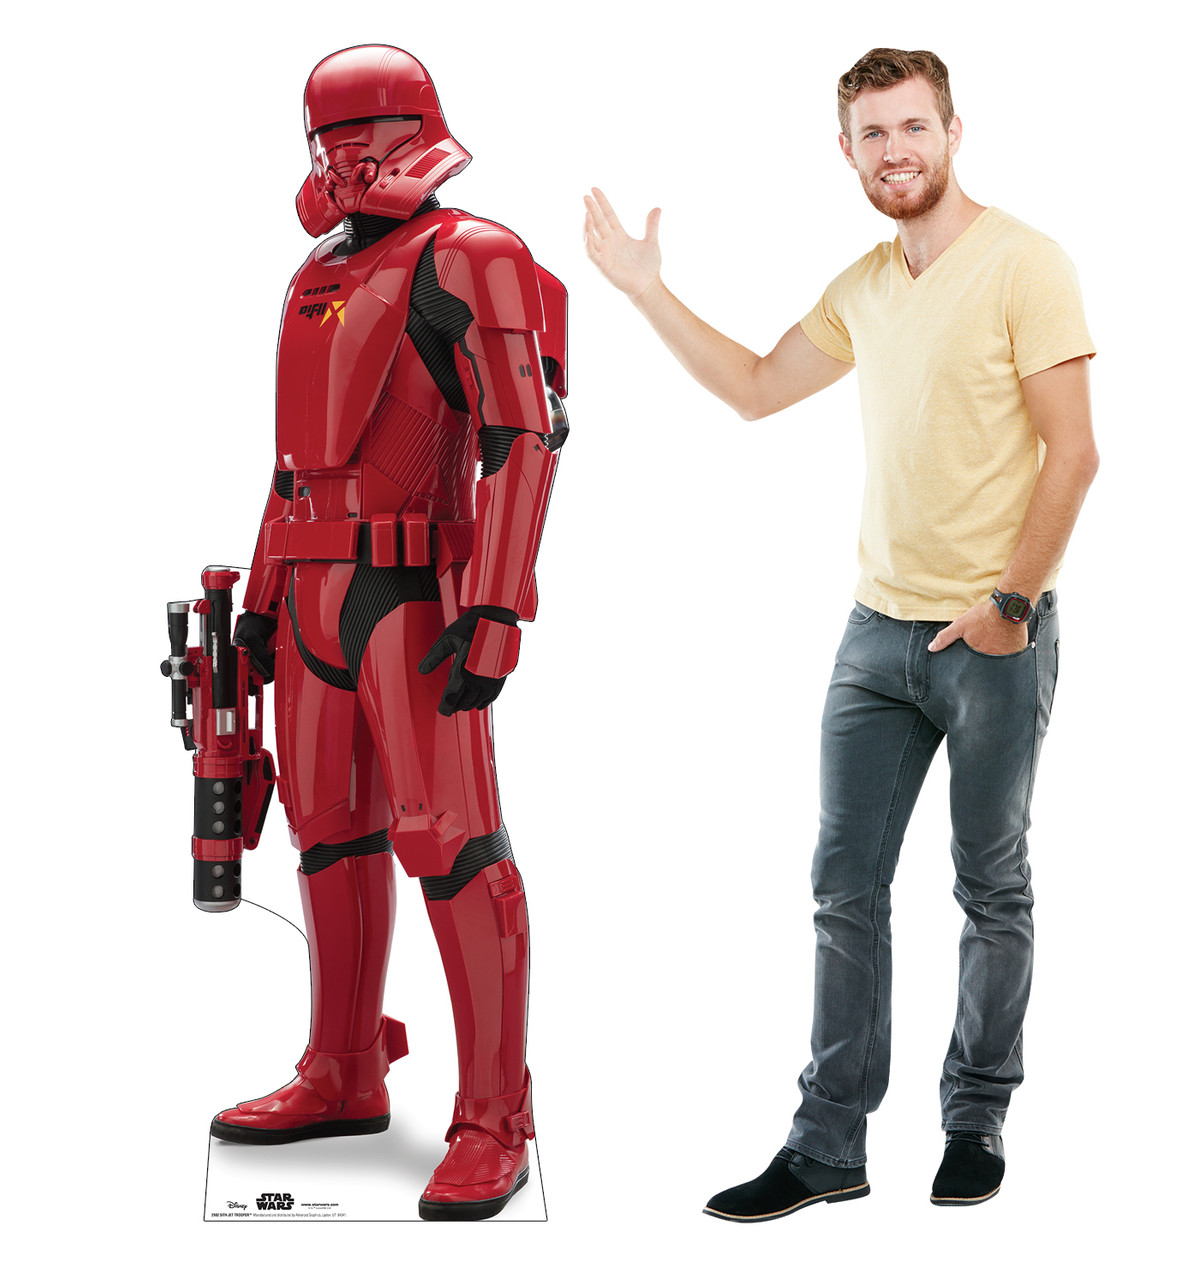 Life-size cardboard standee of Sith Jet Trooper™ (Star Wars IX) with model.